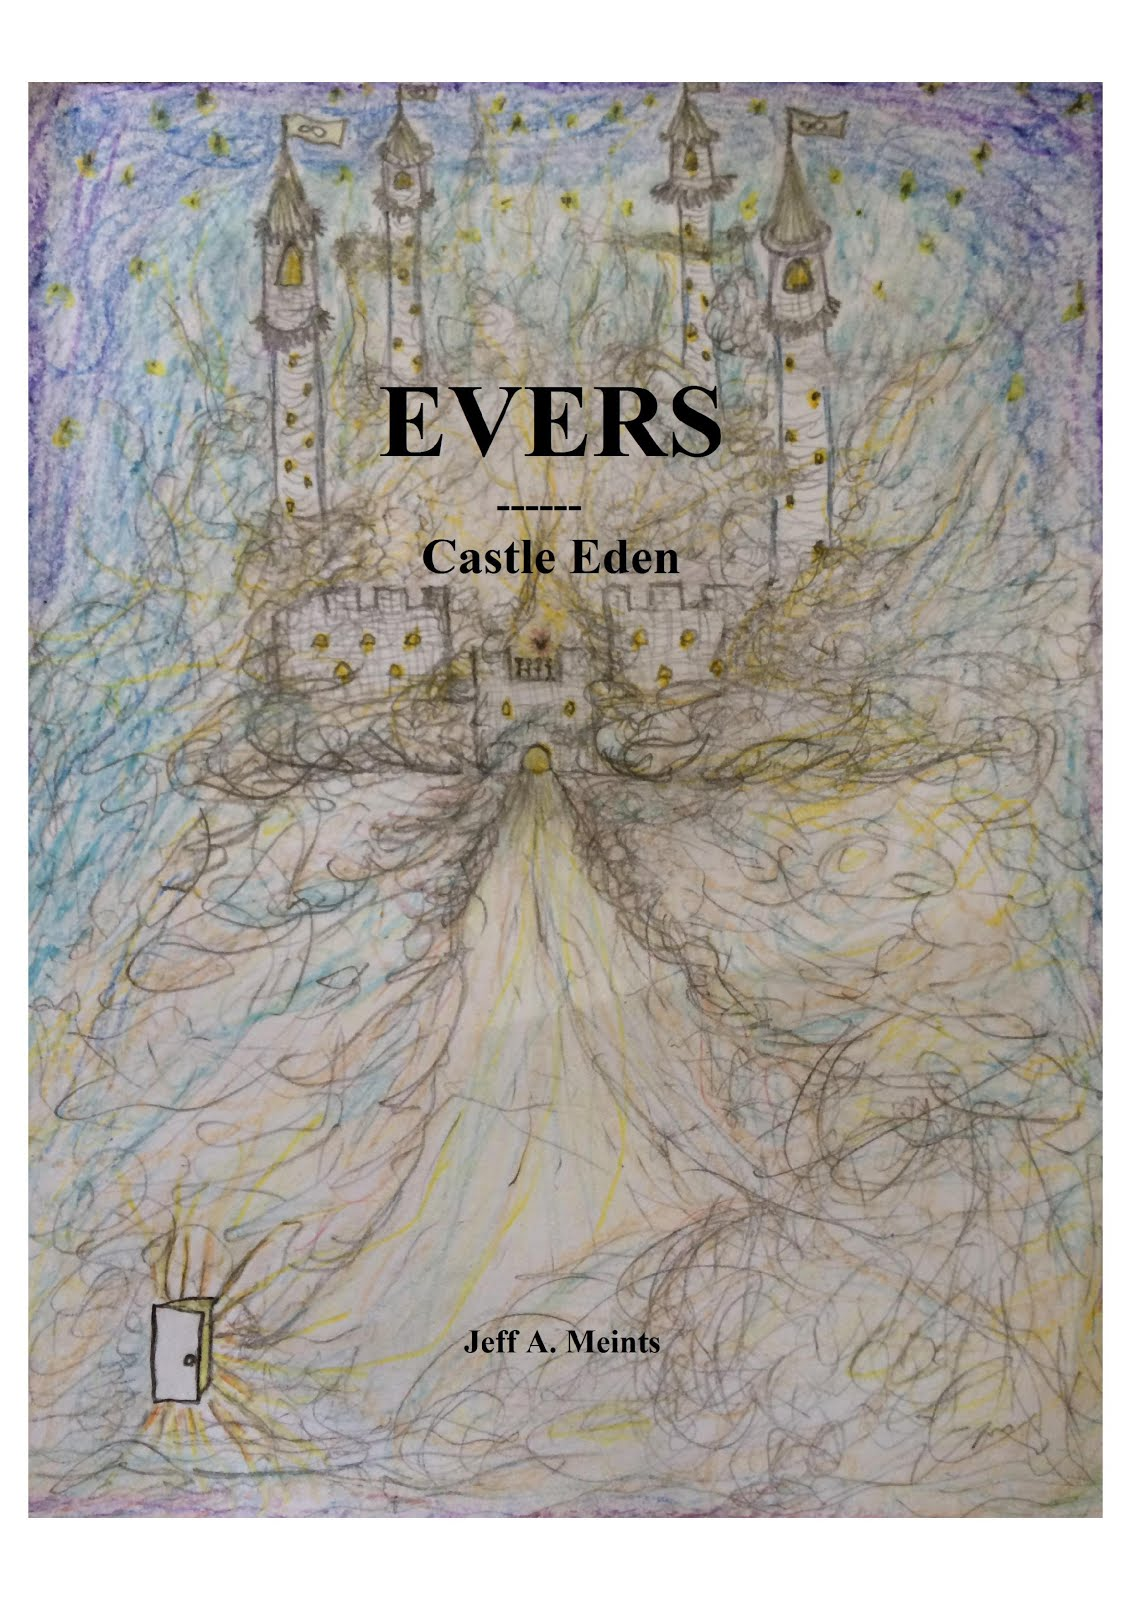 Evers - Castle Eden